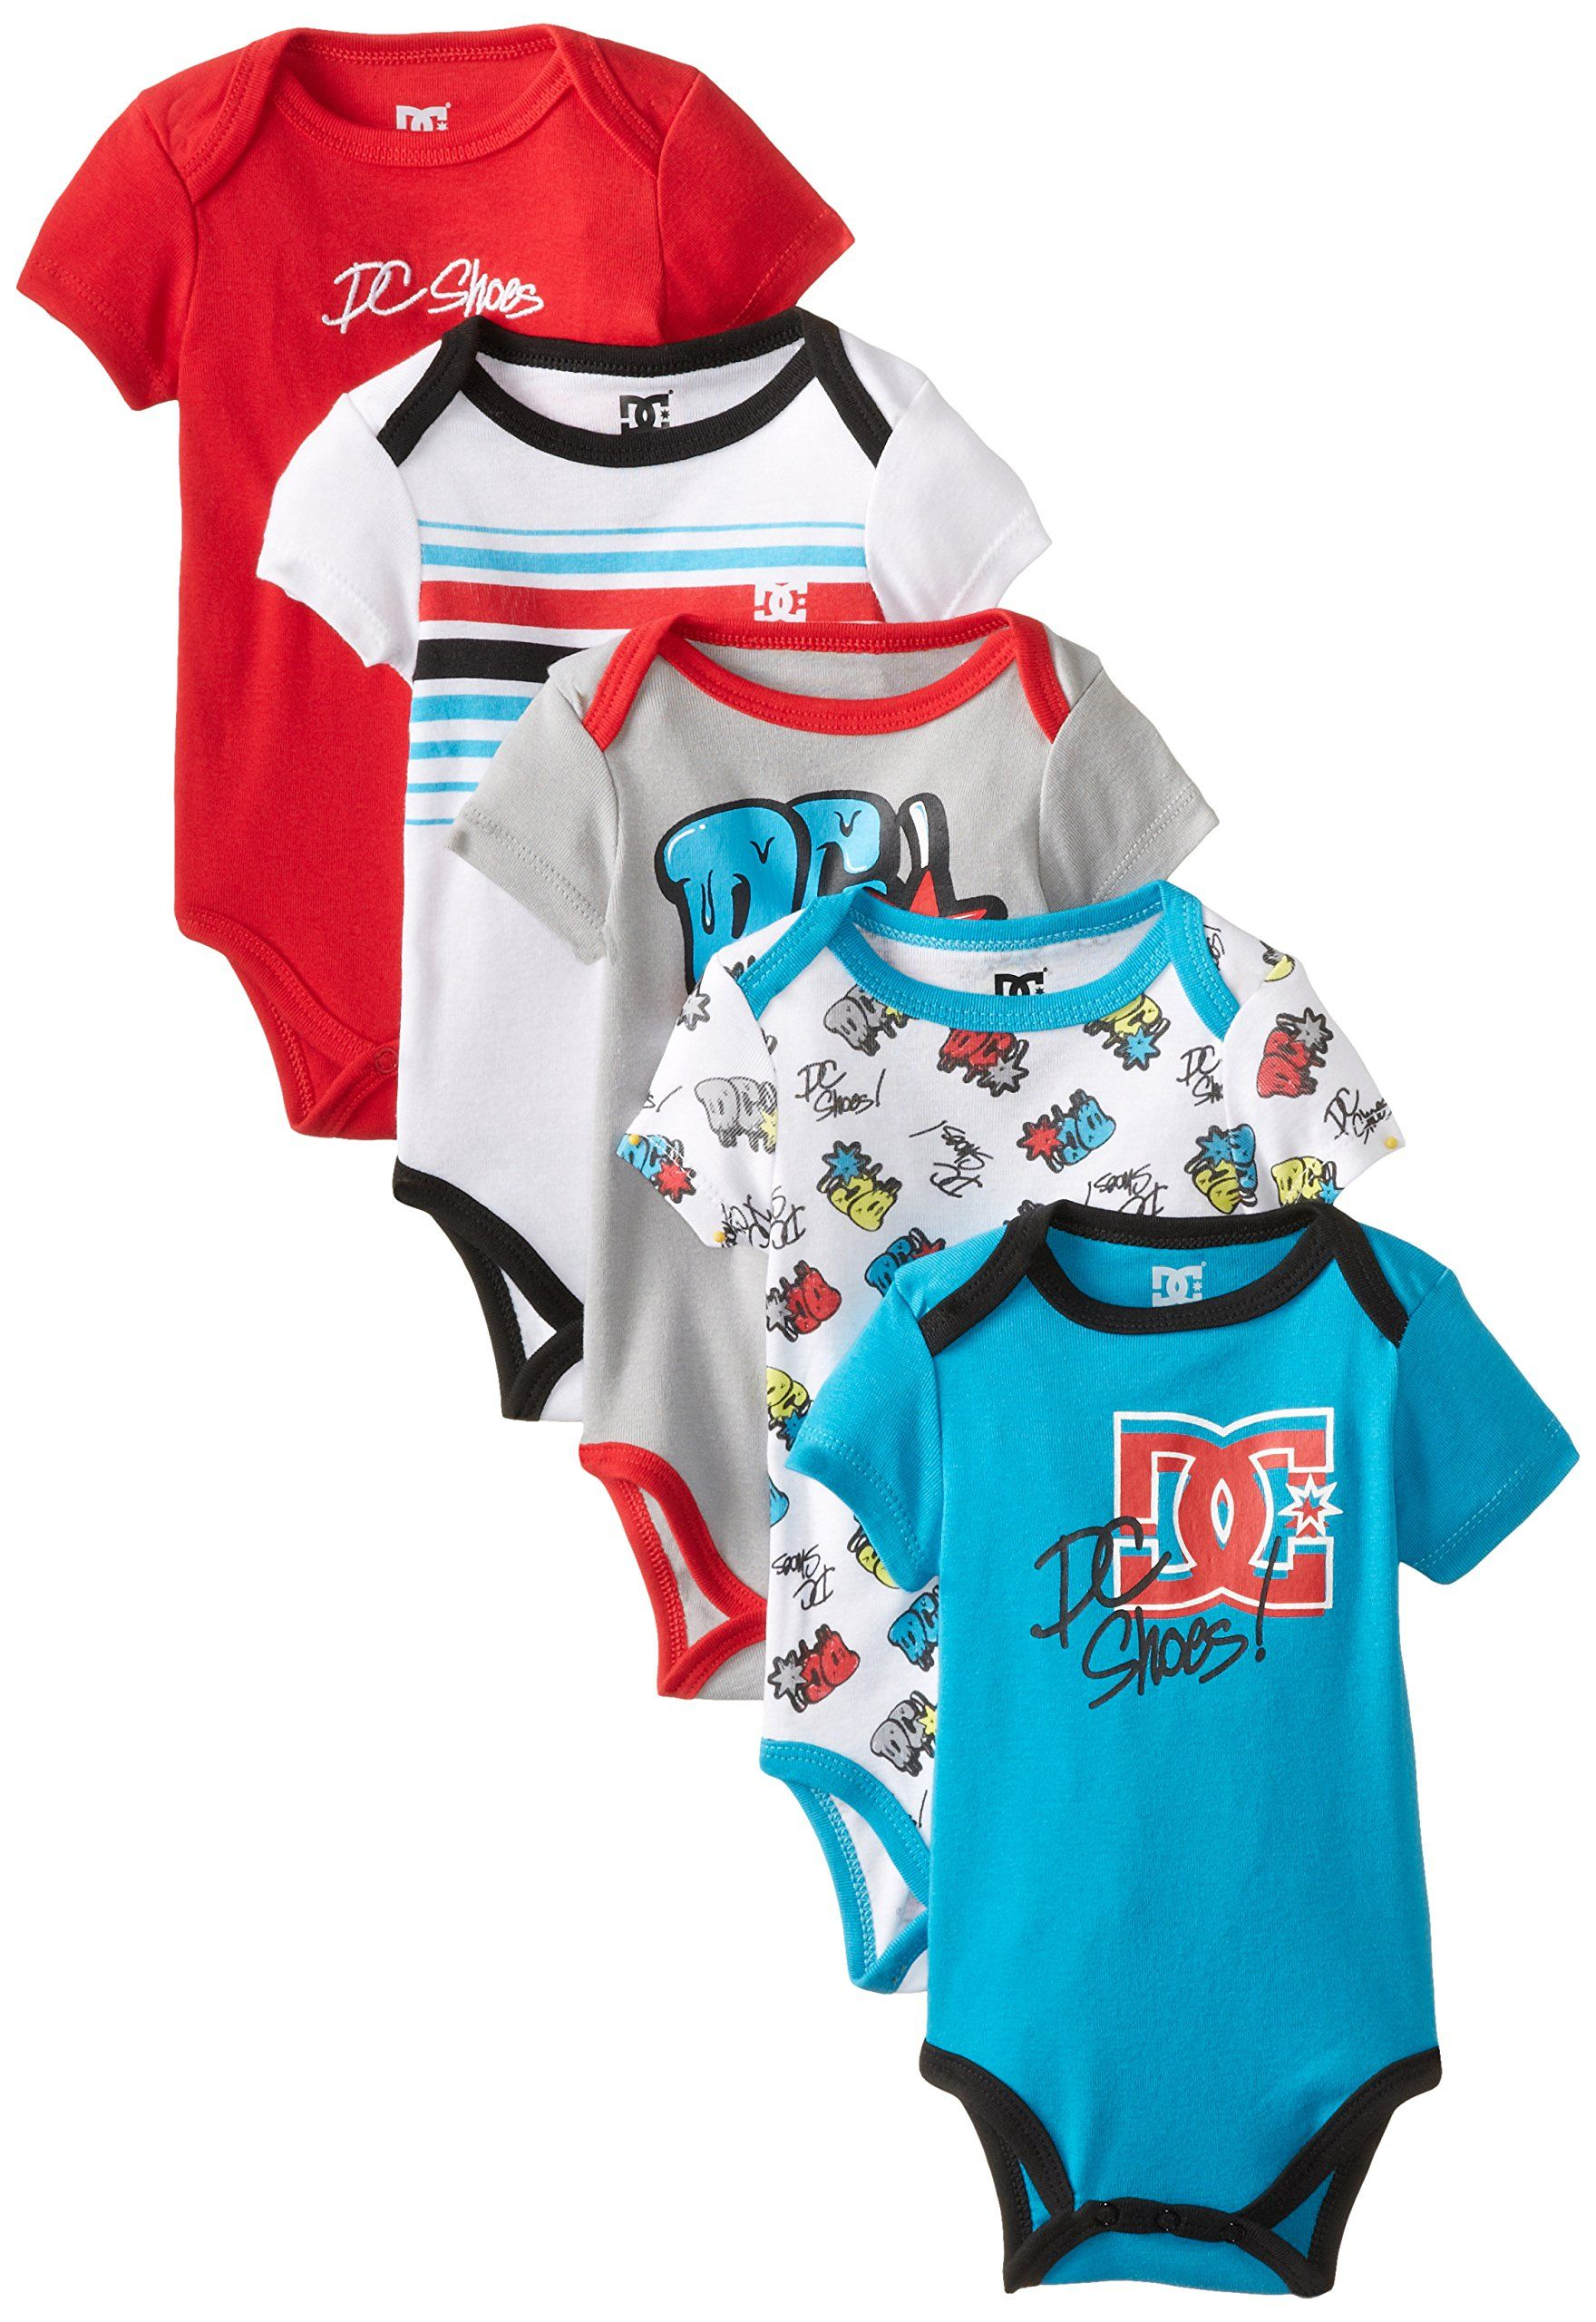 DC Shoes Co Baby Boys Newborn 5 Pack Bodysuits Red Aqua Gray Group